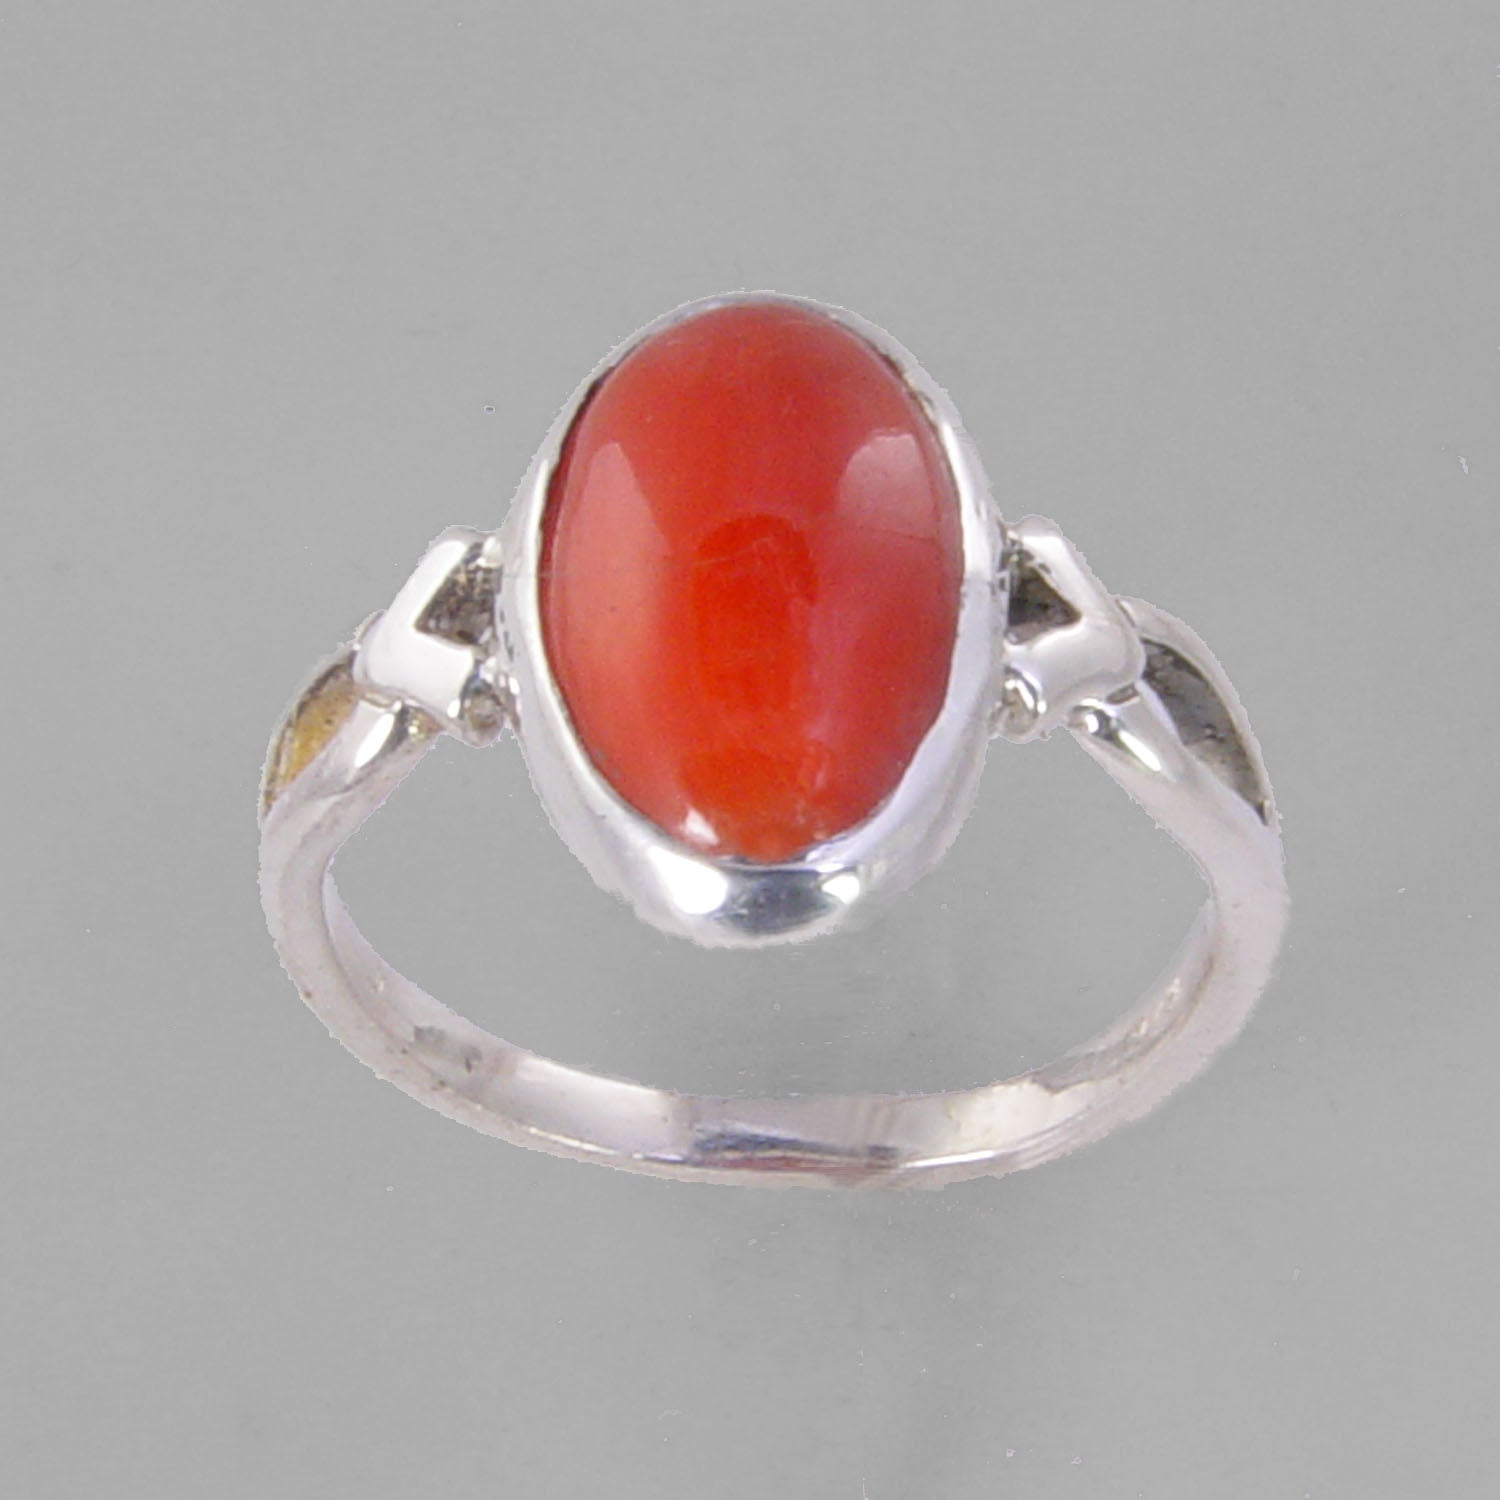 Red Coral 2.75 ct Cab Bezel Set V Shank Sterling Silver Ring, Size 7